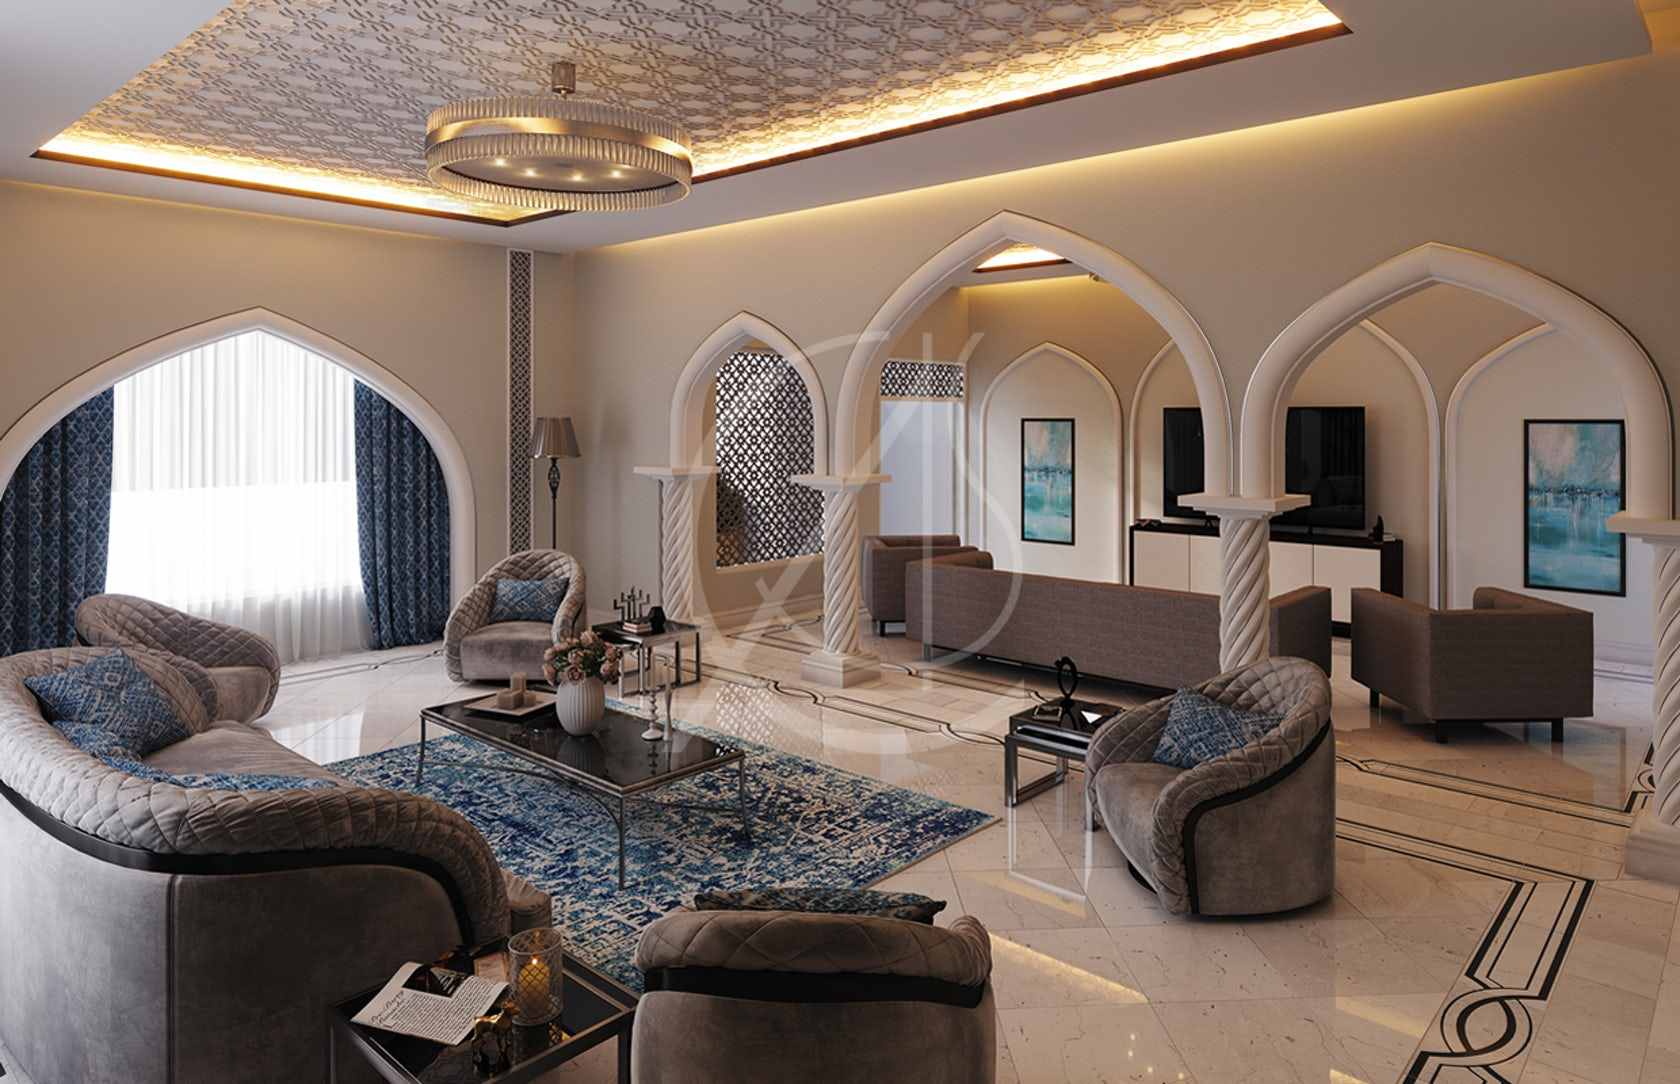 Modern islamic home interior design architizer - Modern house interior design ...